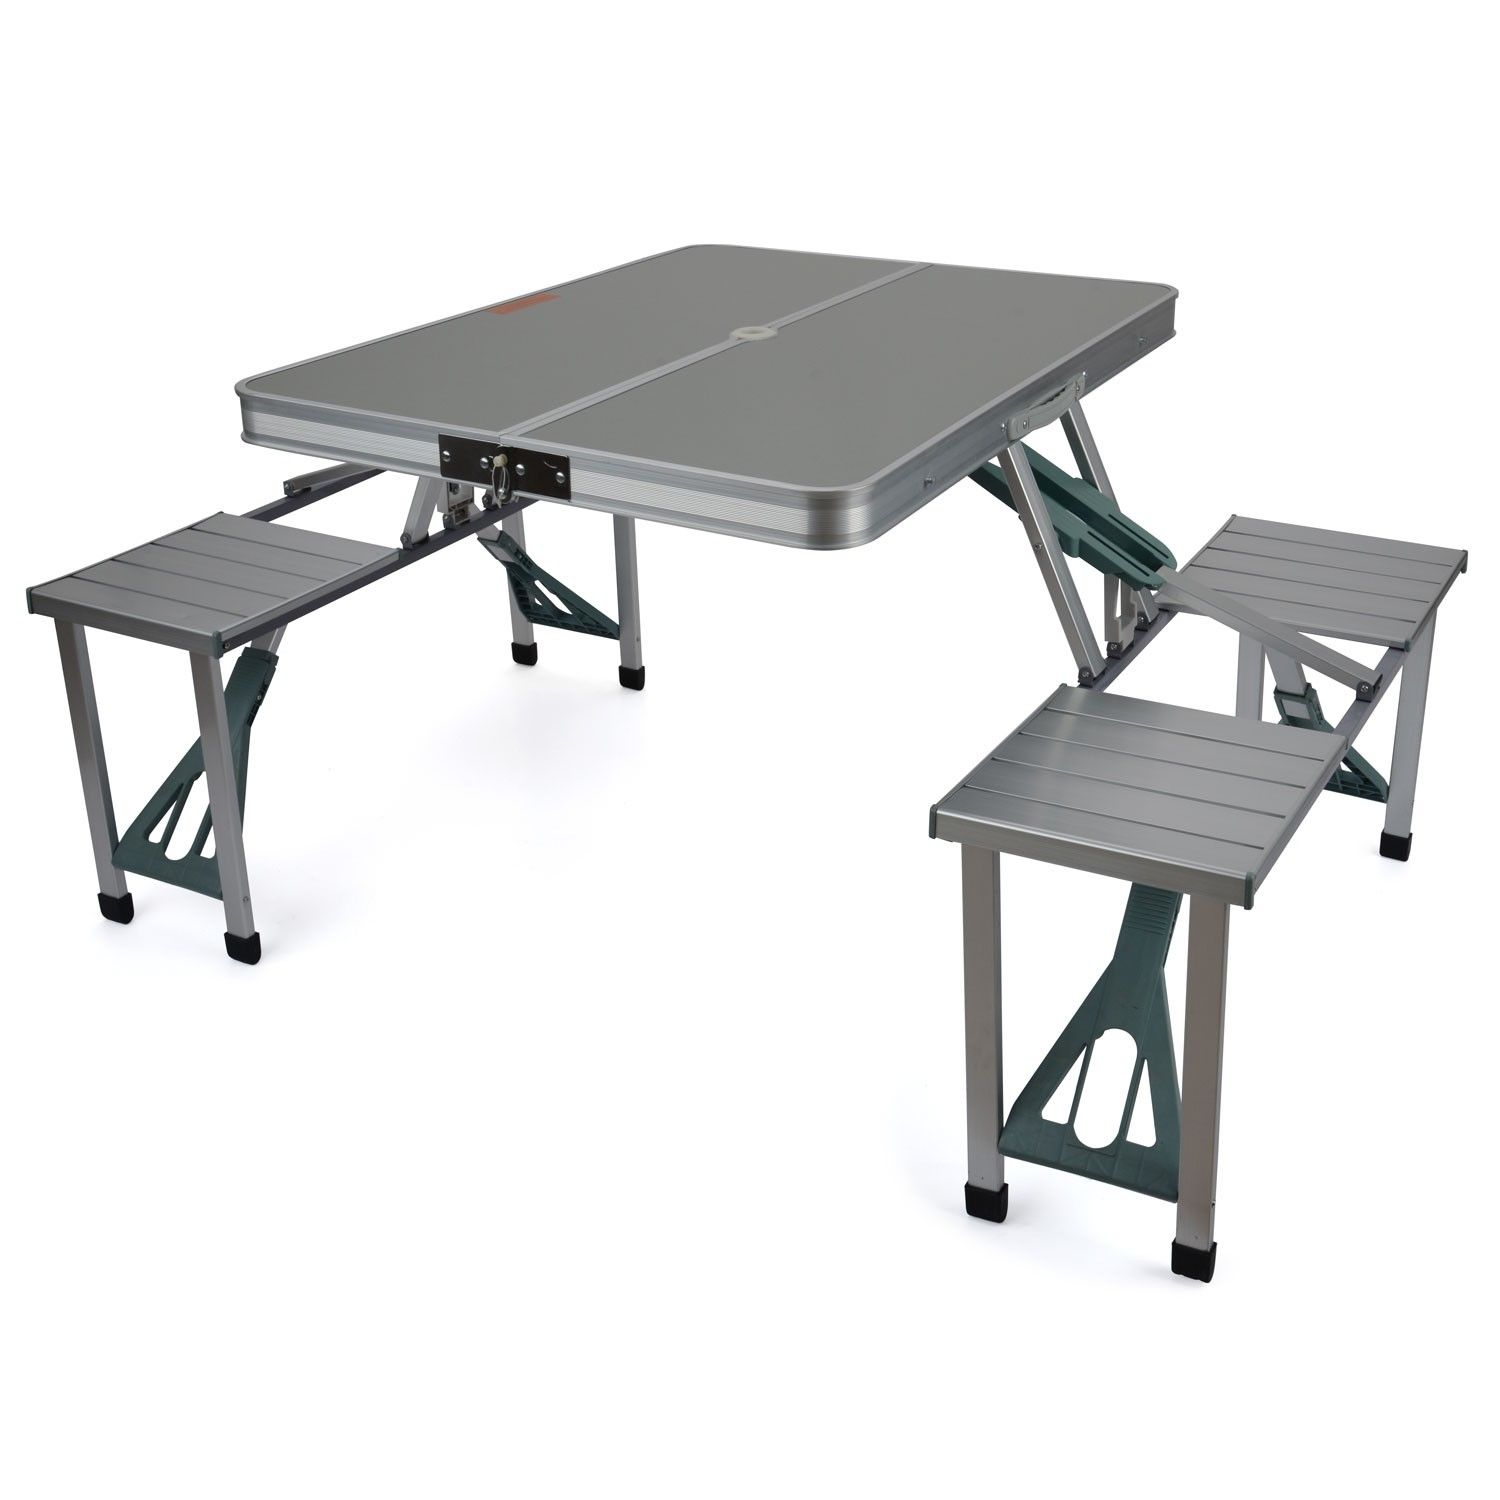 Aluminium Folding Picnic Table With Seats